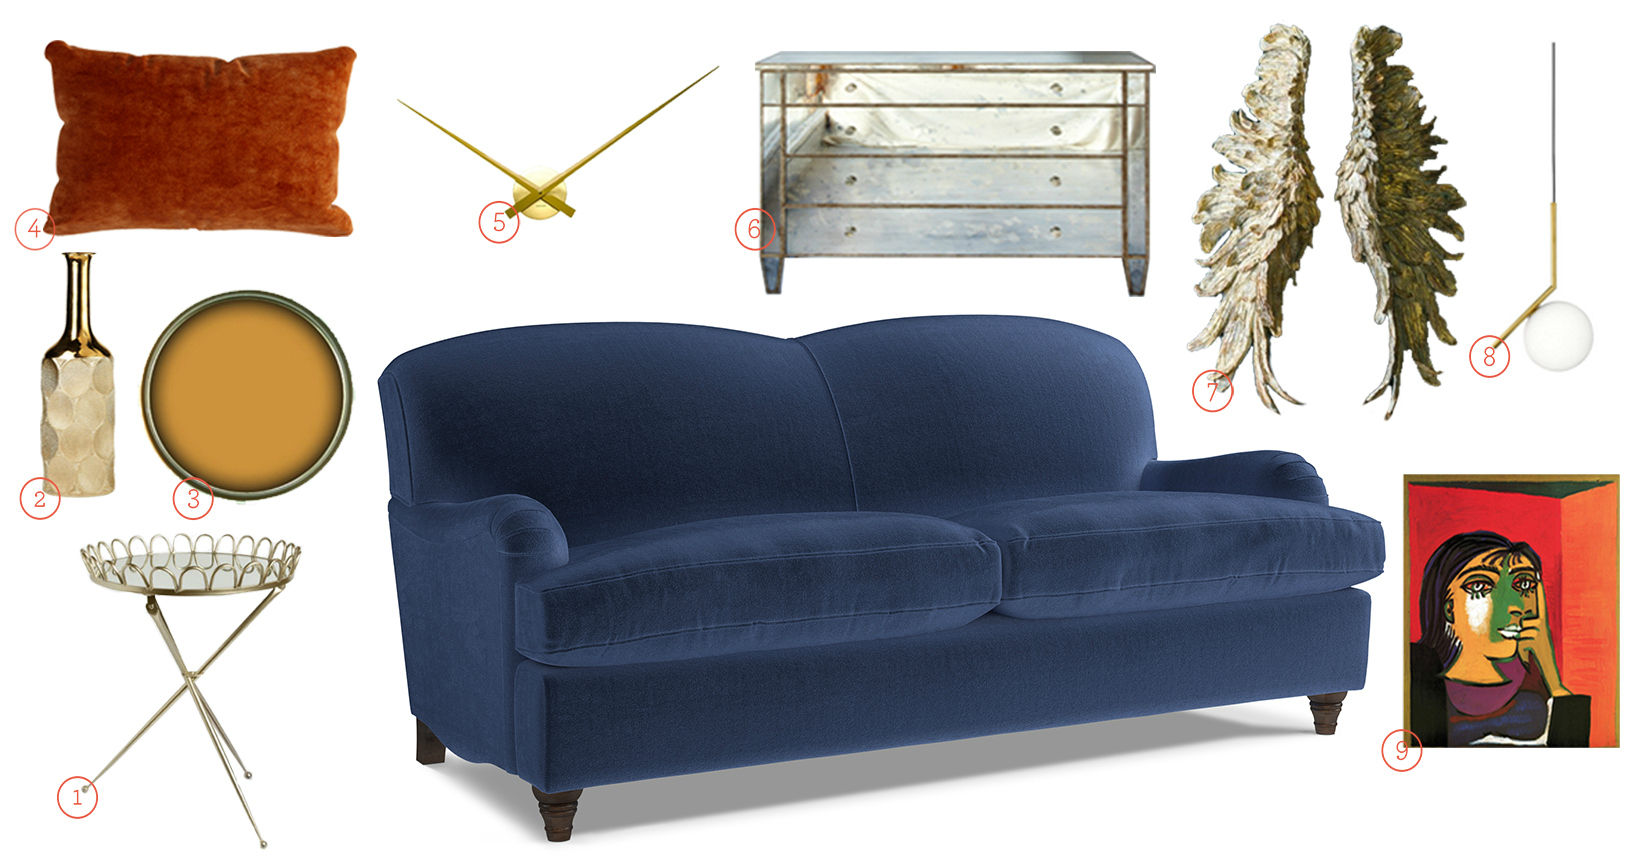 Knightley Sofa Upholstered in Navy Fabric